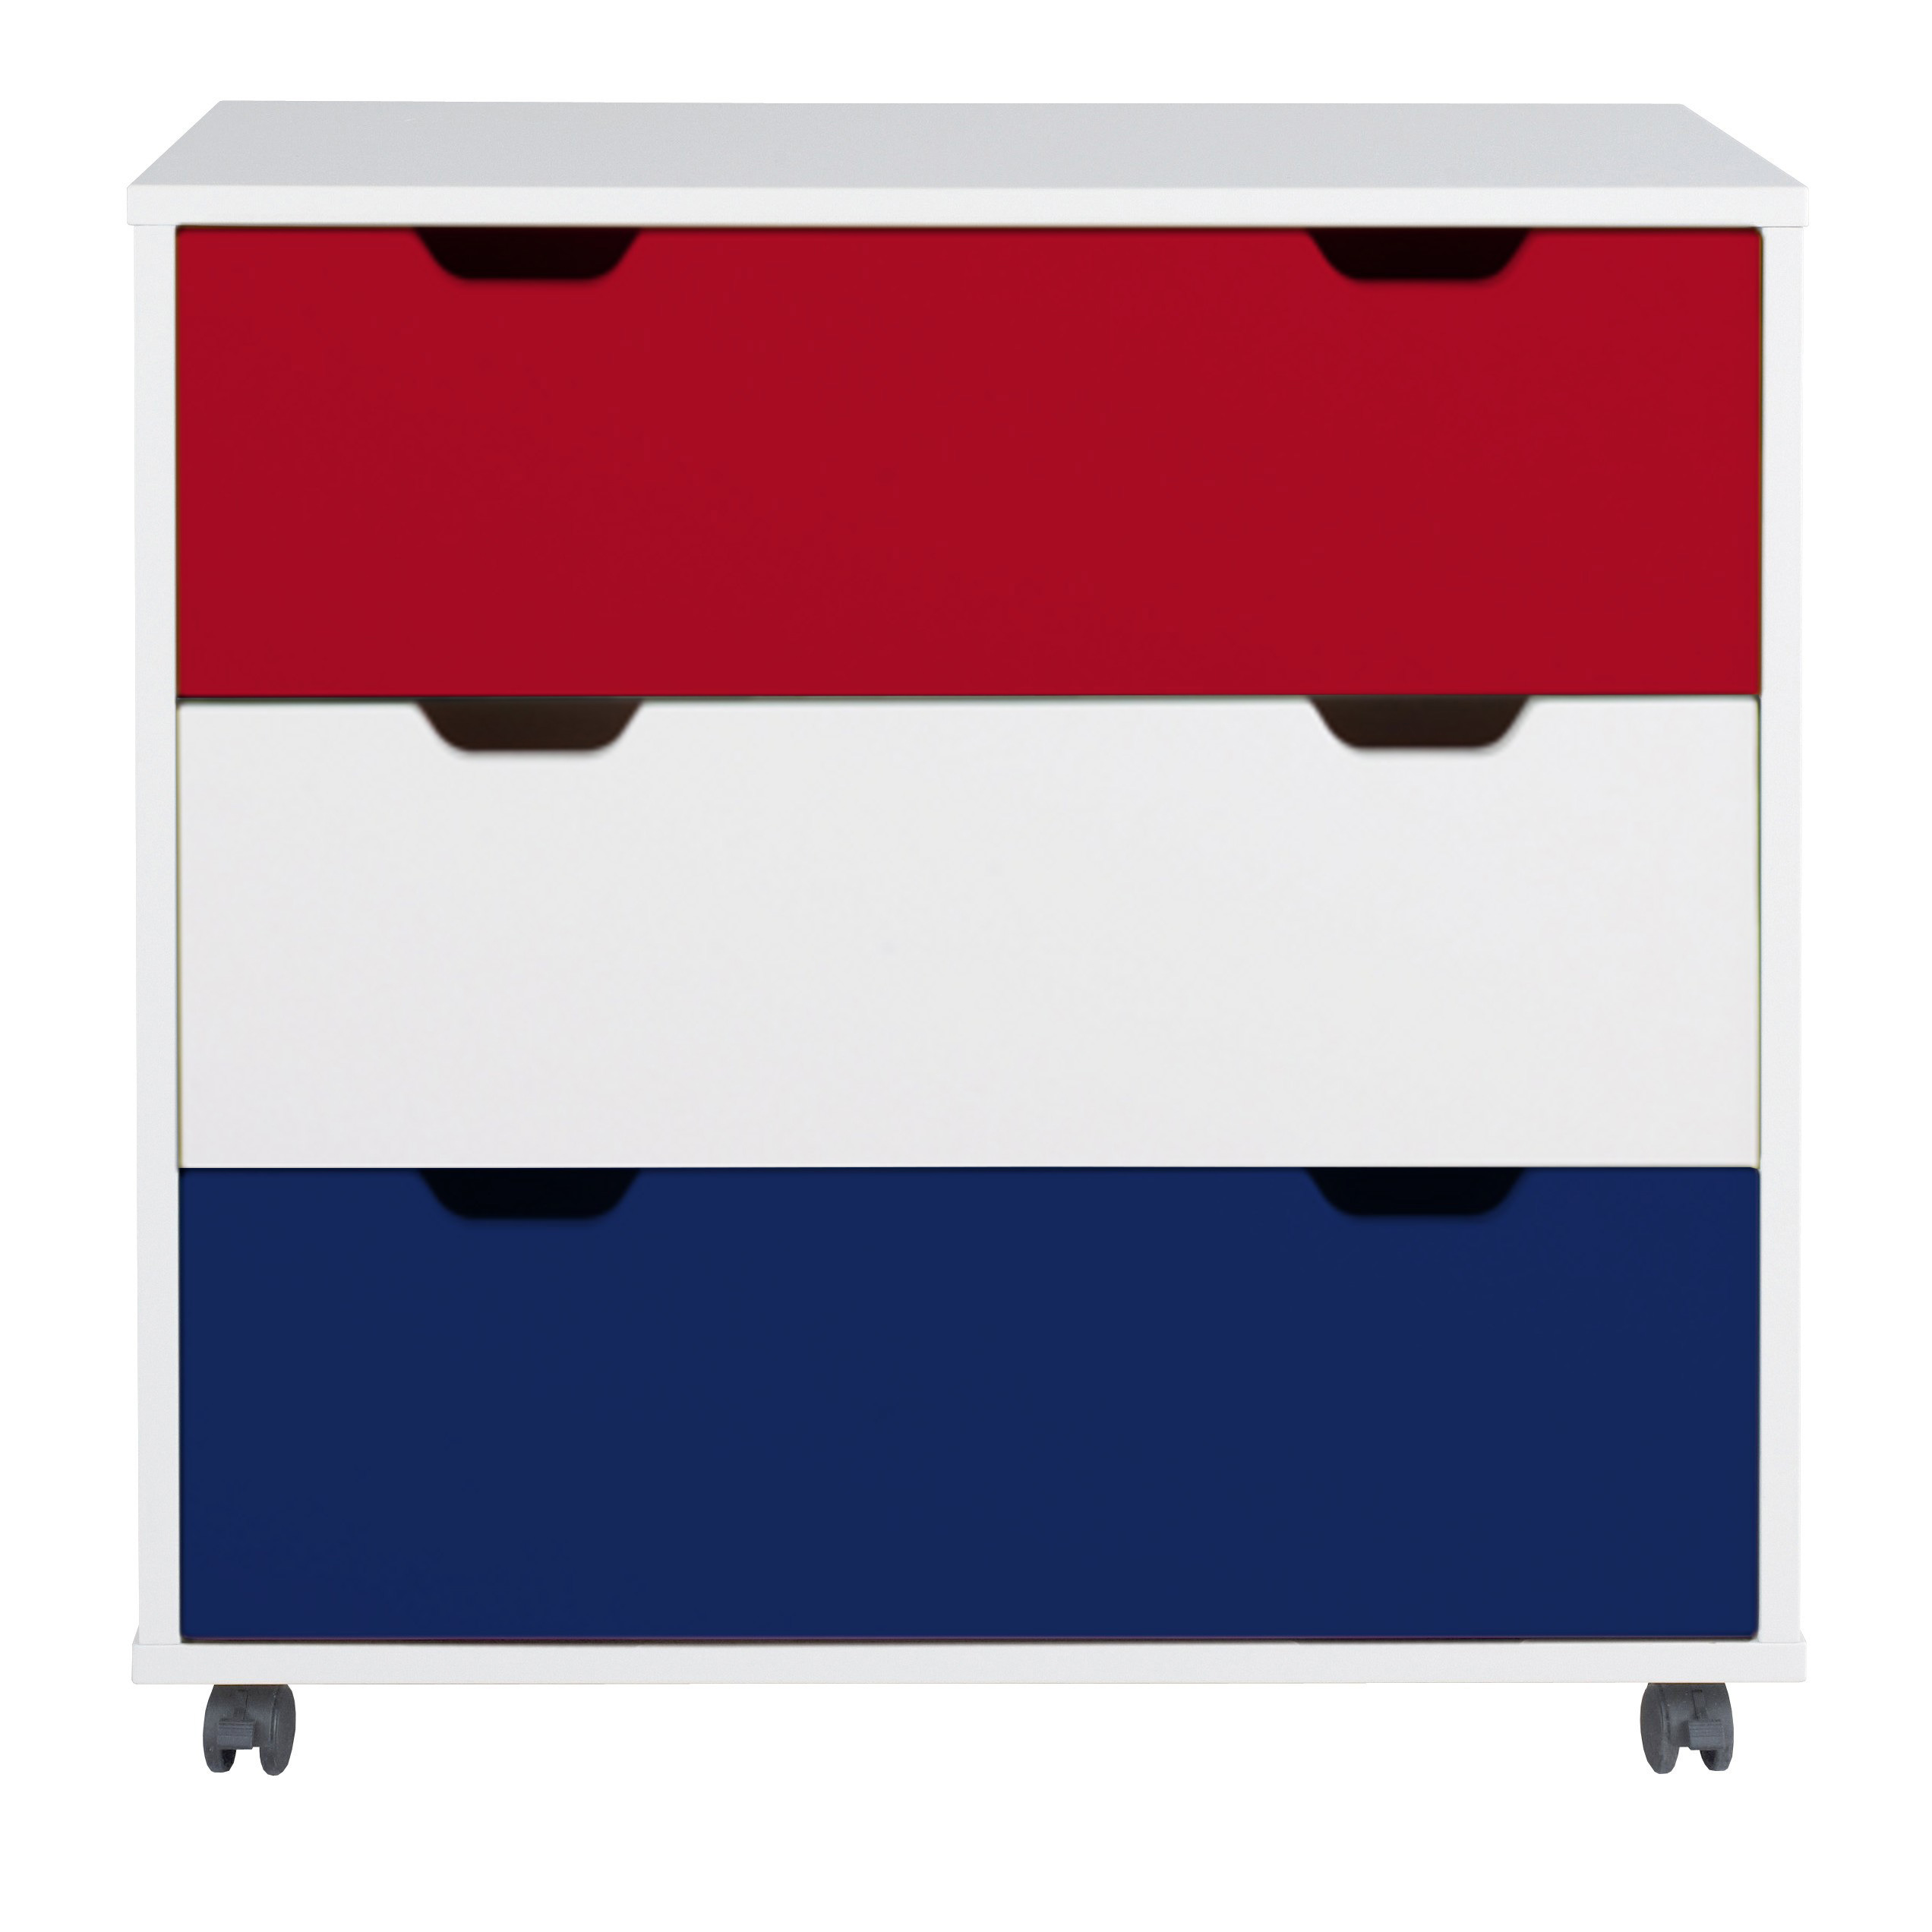 Juicy Fruits chest of drawers - Red/White/Navy by Aspace